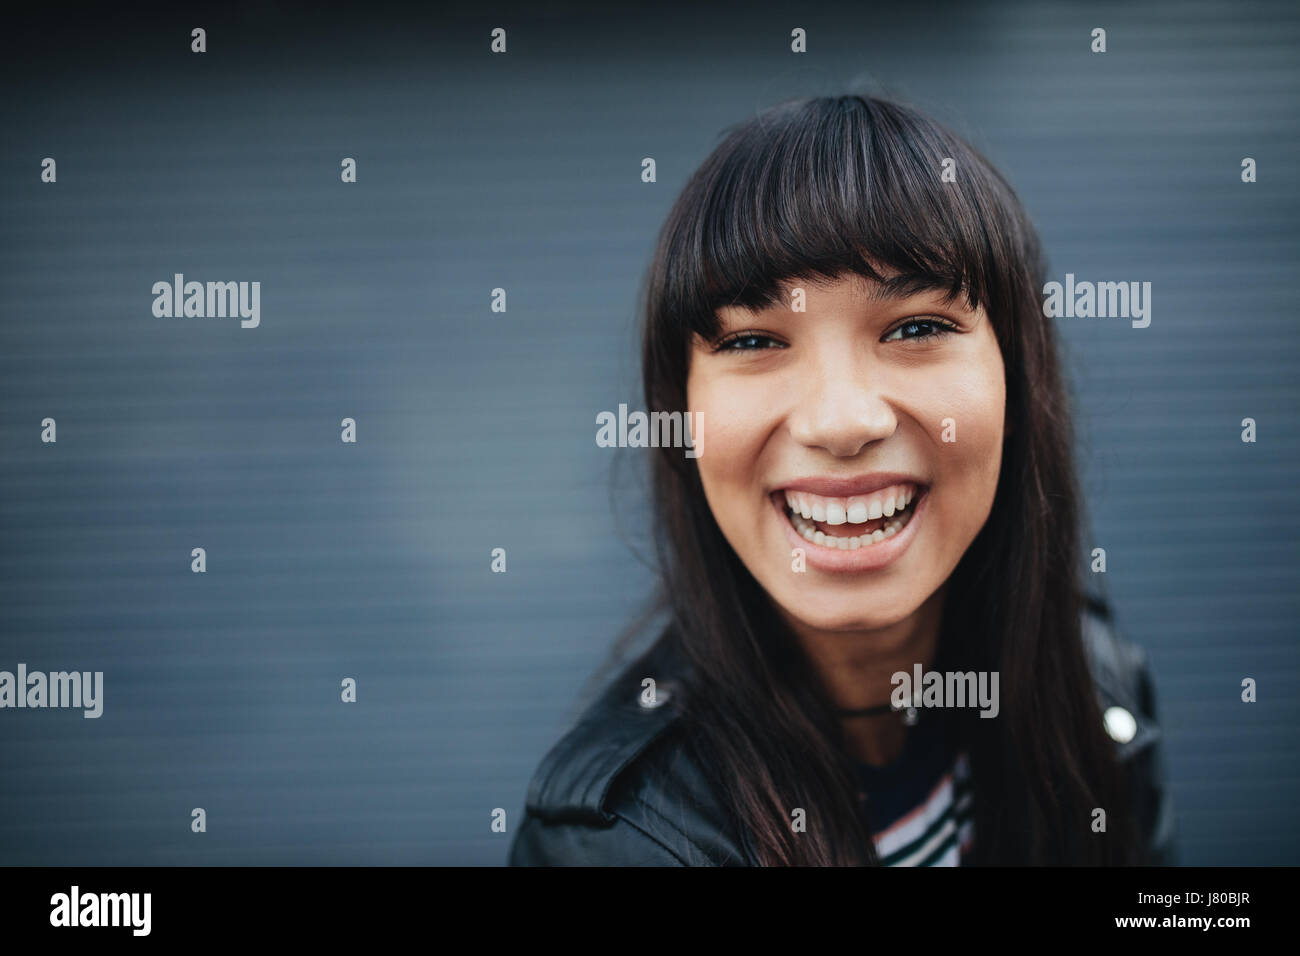 Close up portrait of young woman laughing against gray background. Beautiful hispanic female model having fun outdoors. - Stock Image